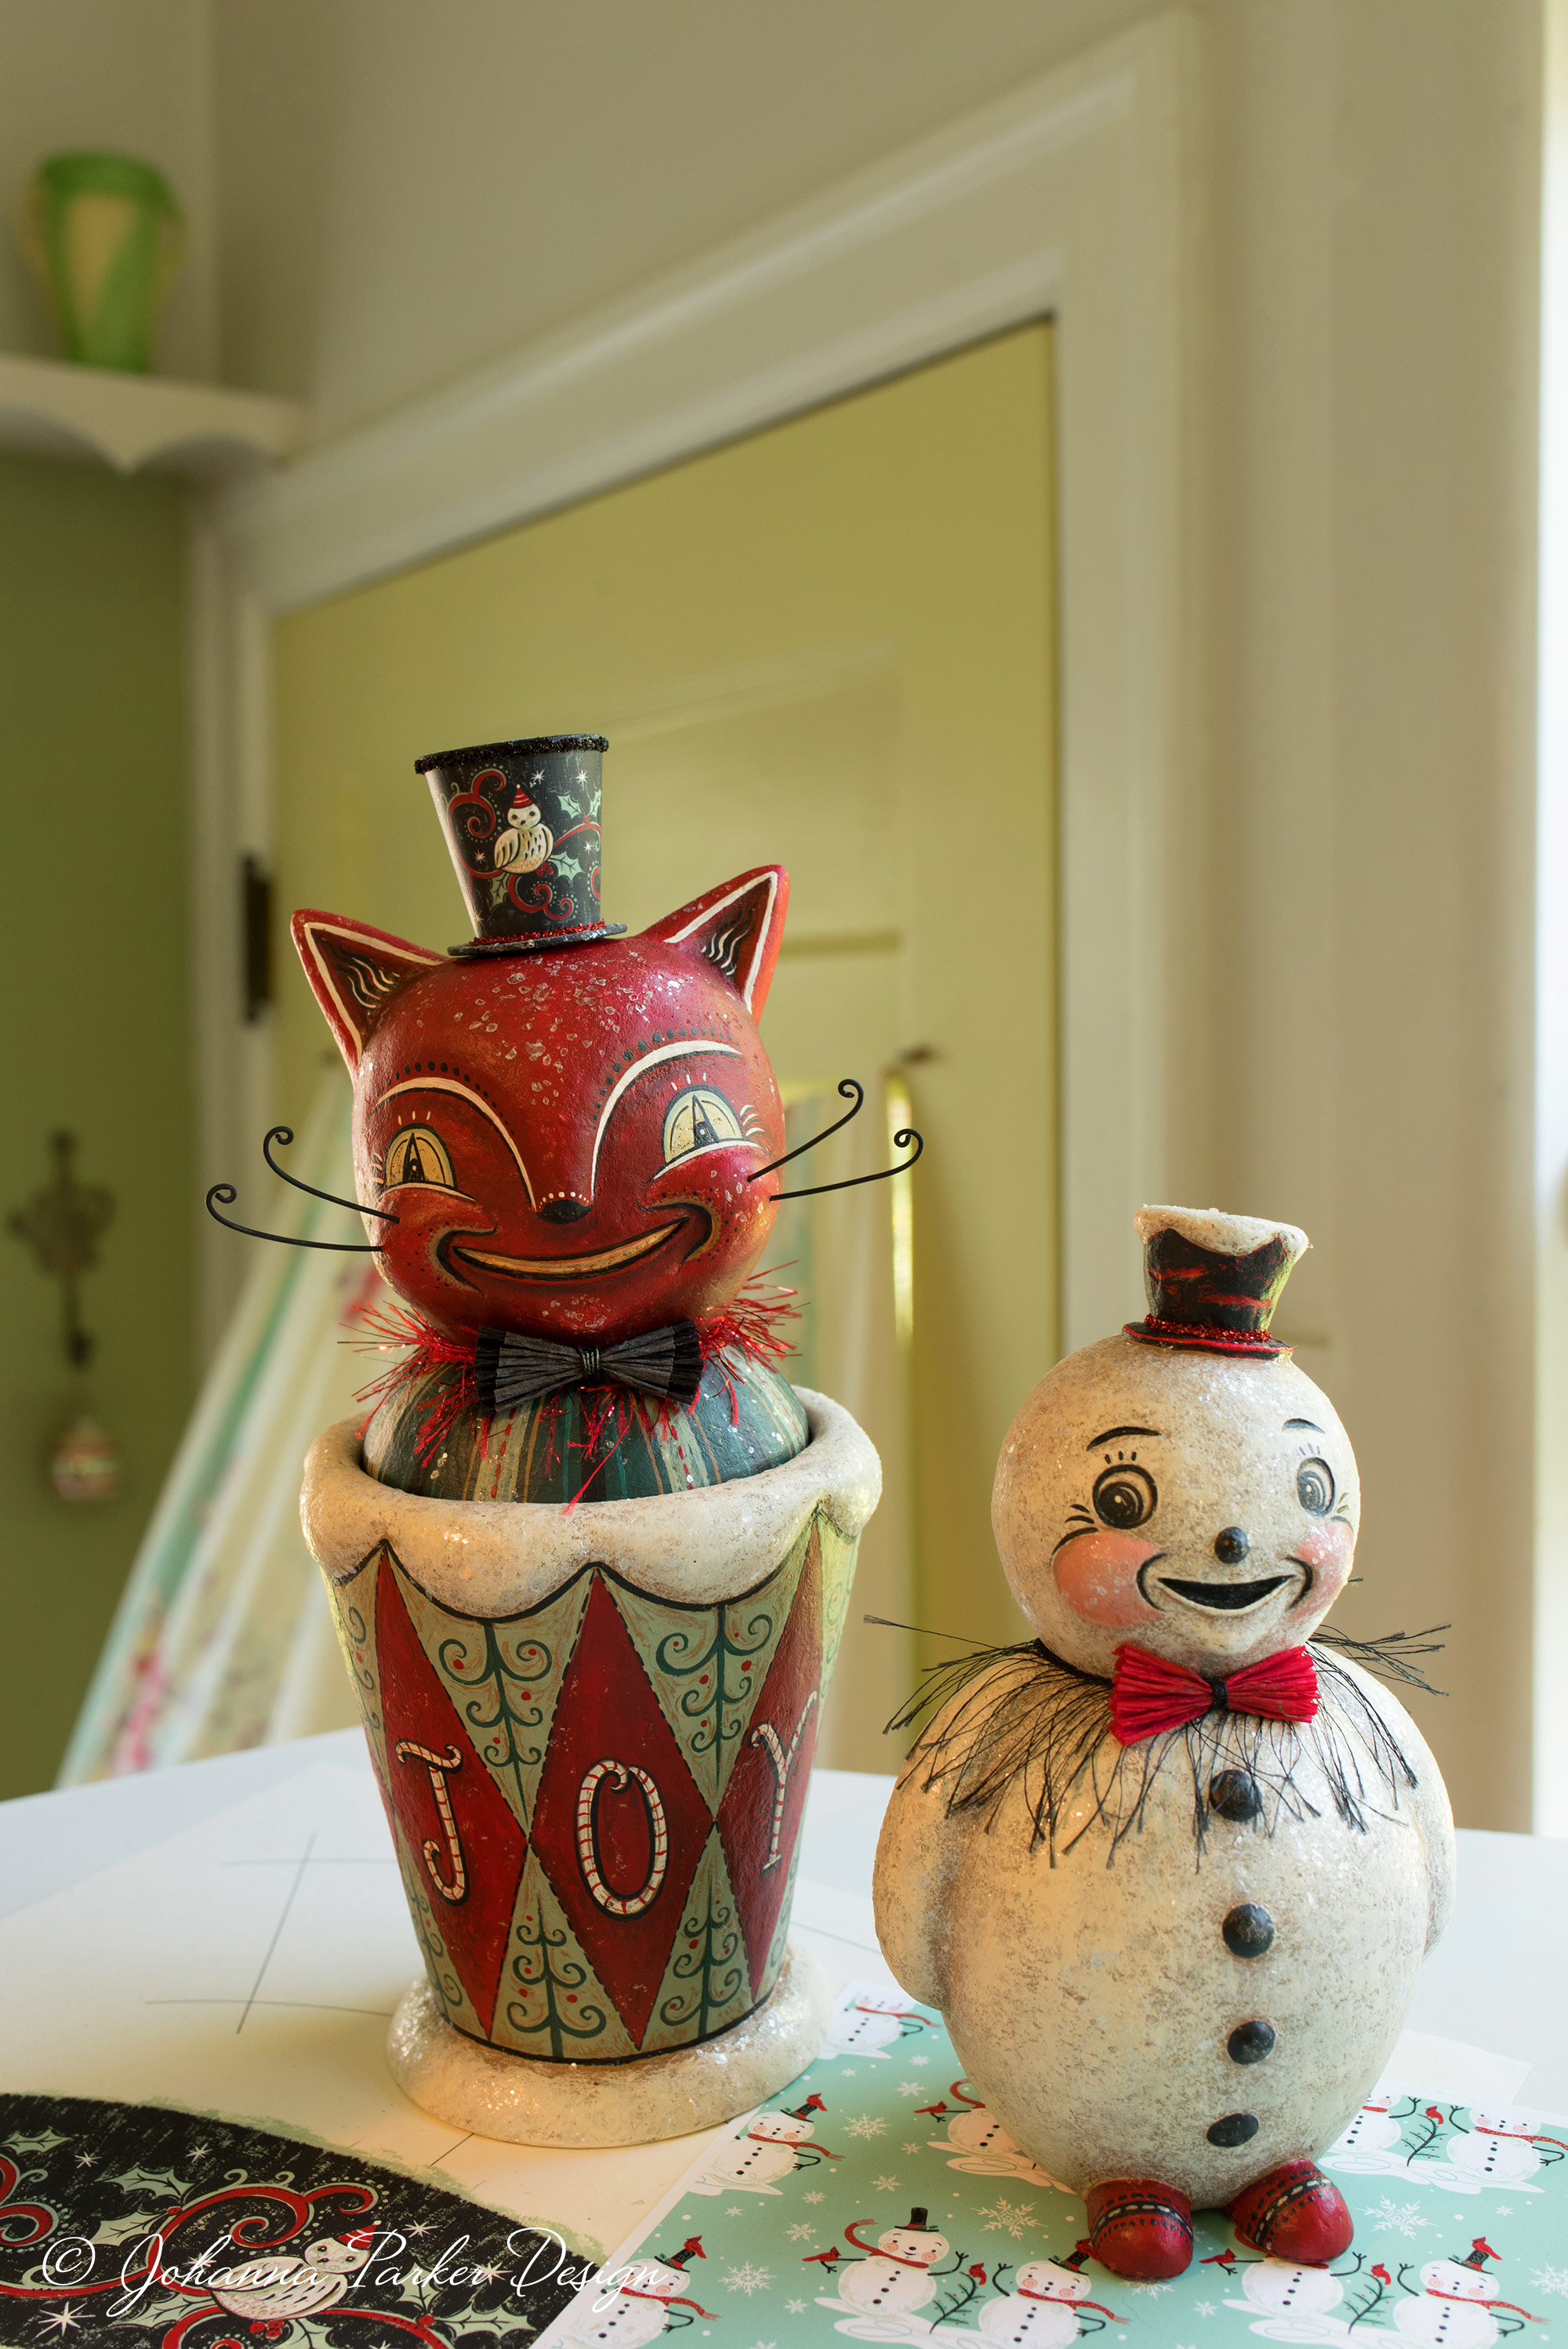 We chose this mischievous pair of holiday folk art characters, a rare, grinning red cat candy container and a standing snowman, to accompany me in my portrait.